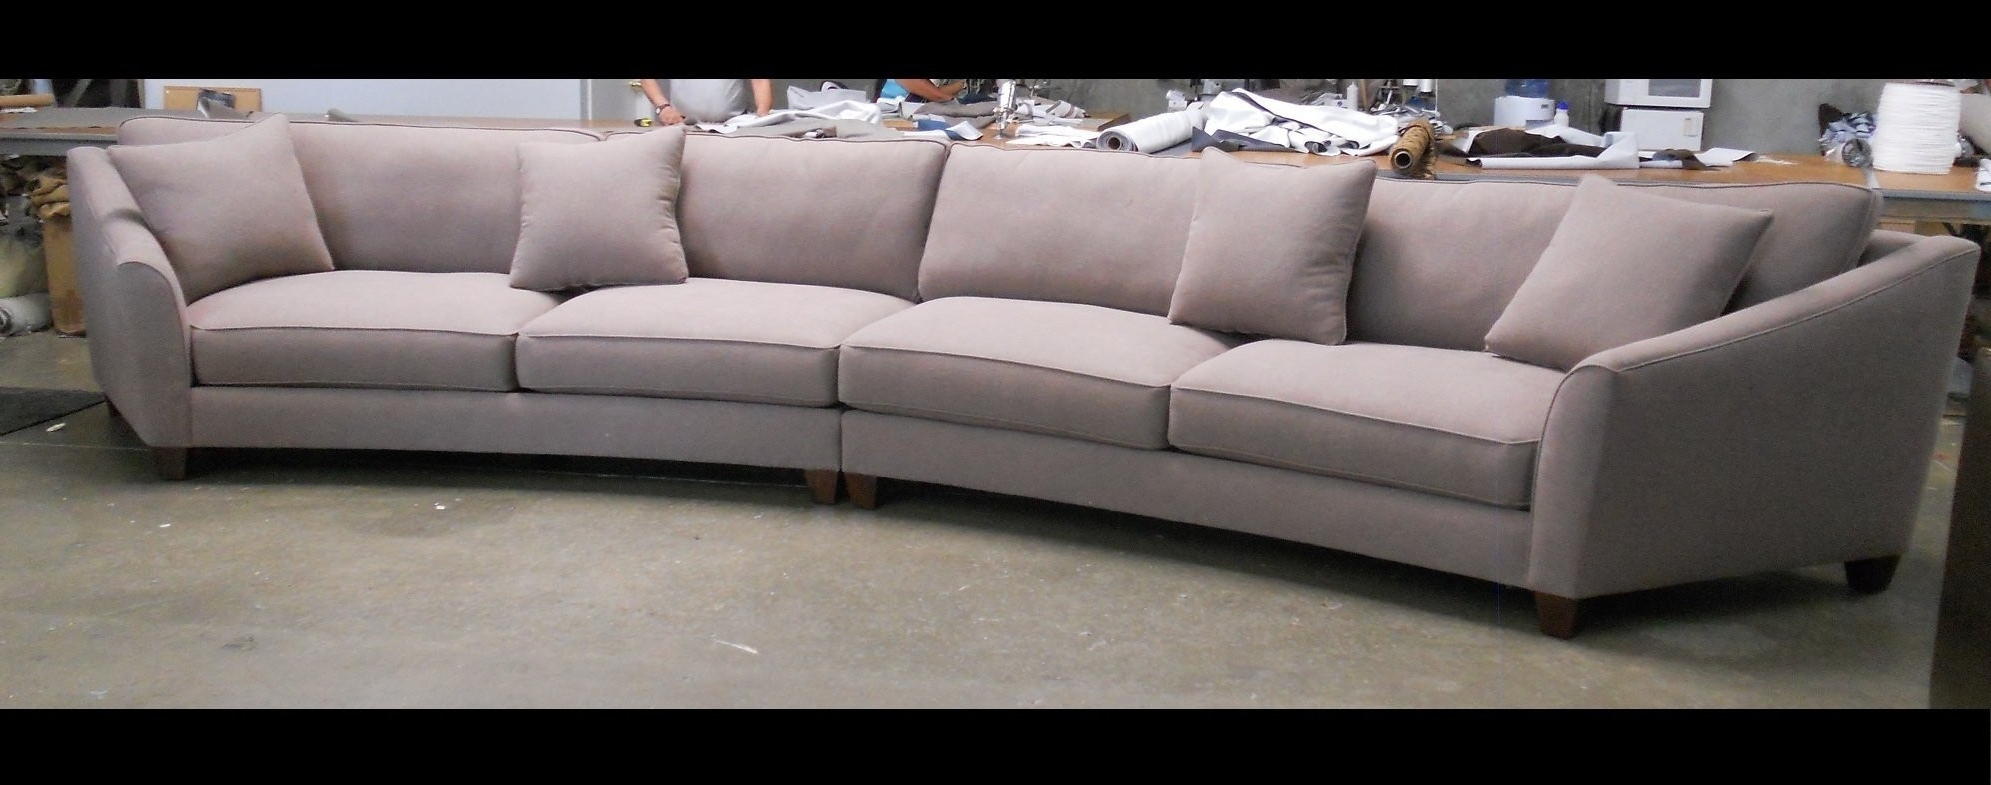 Bargain Rounded Sectional Sofa Curved Design Cabinets Beds Sofas Regarding Trendy Rounded Sofas (View 11 of 20)